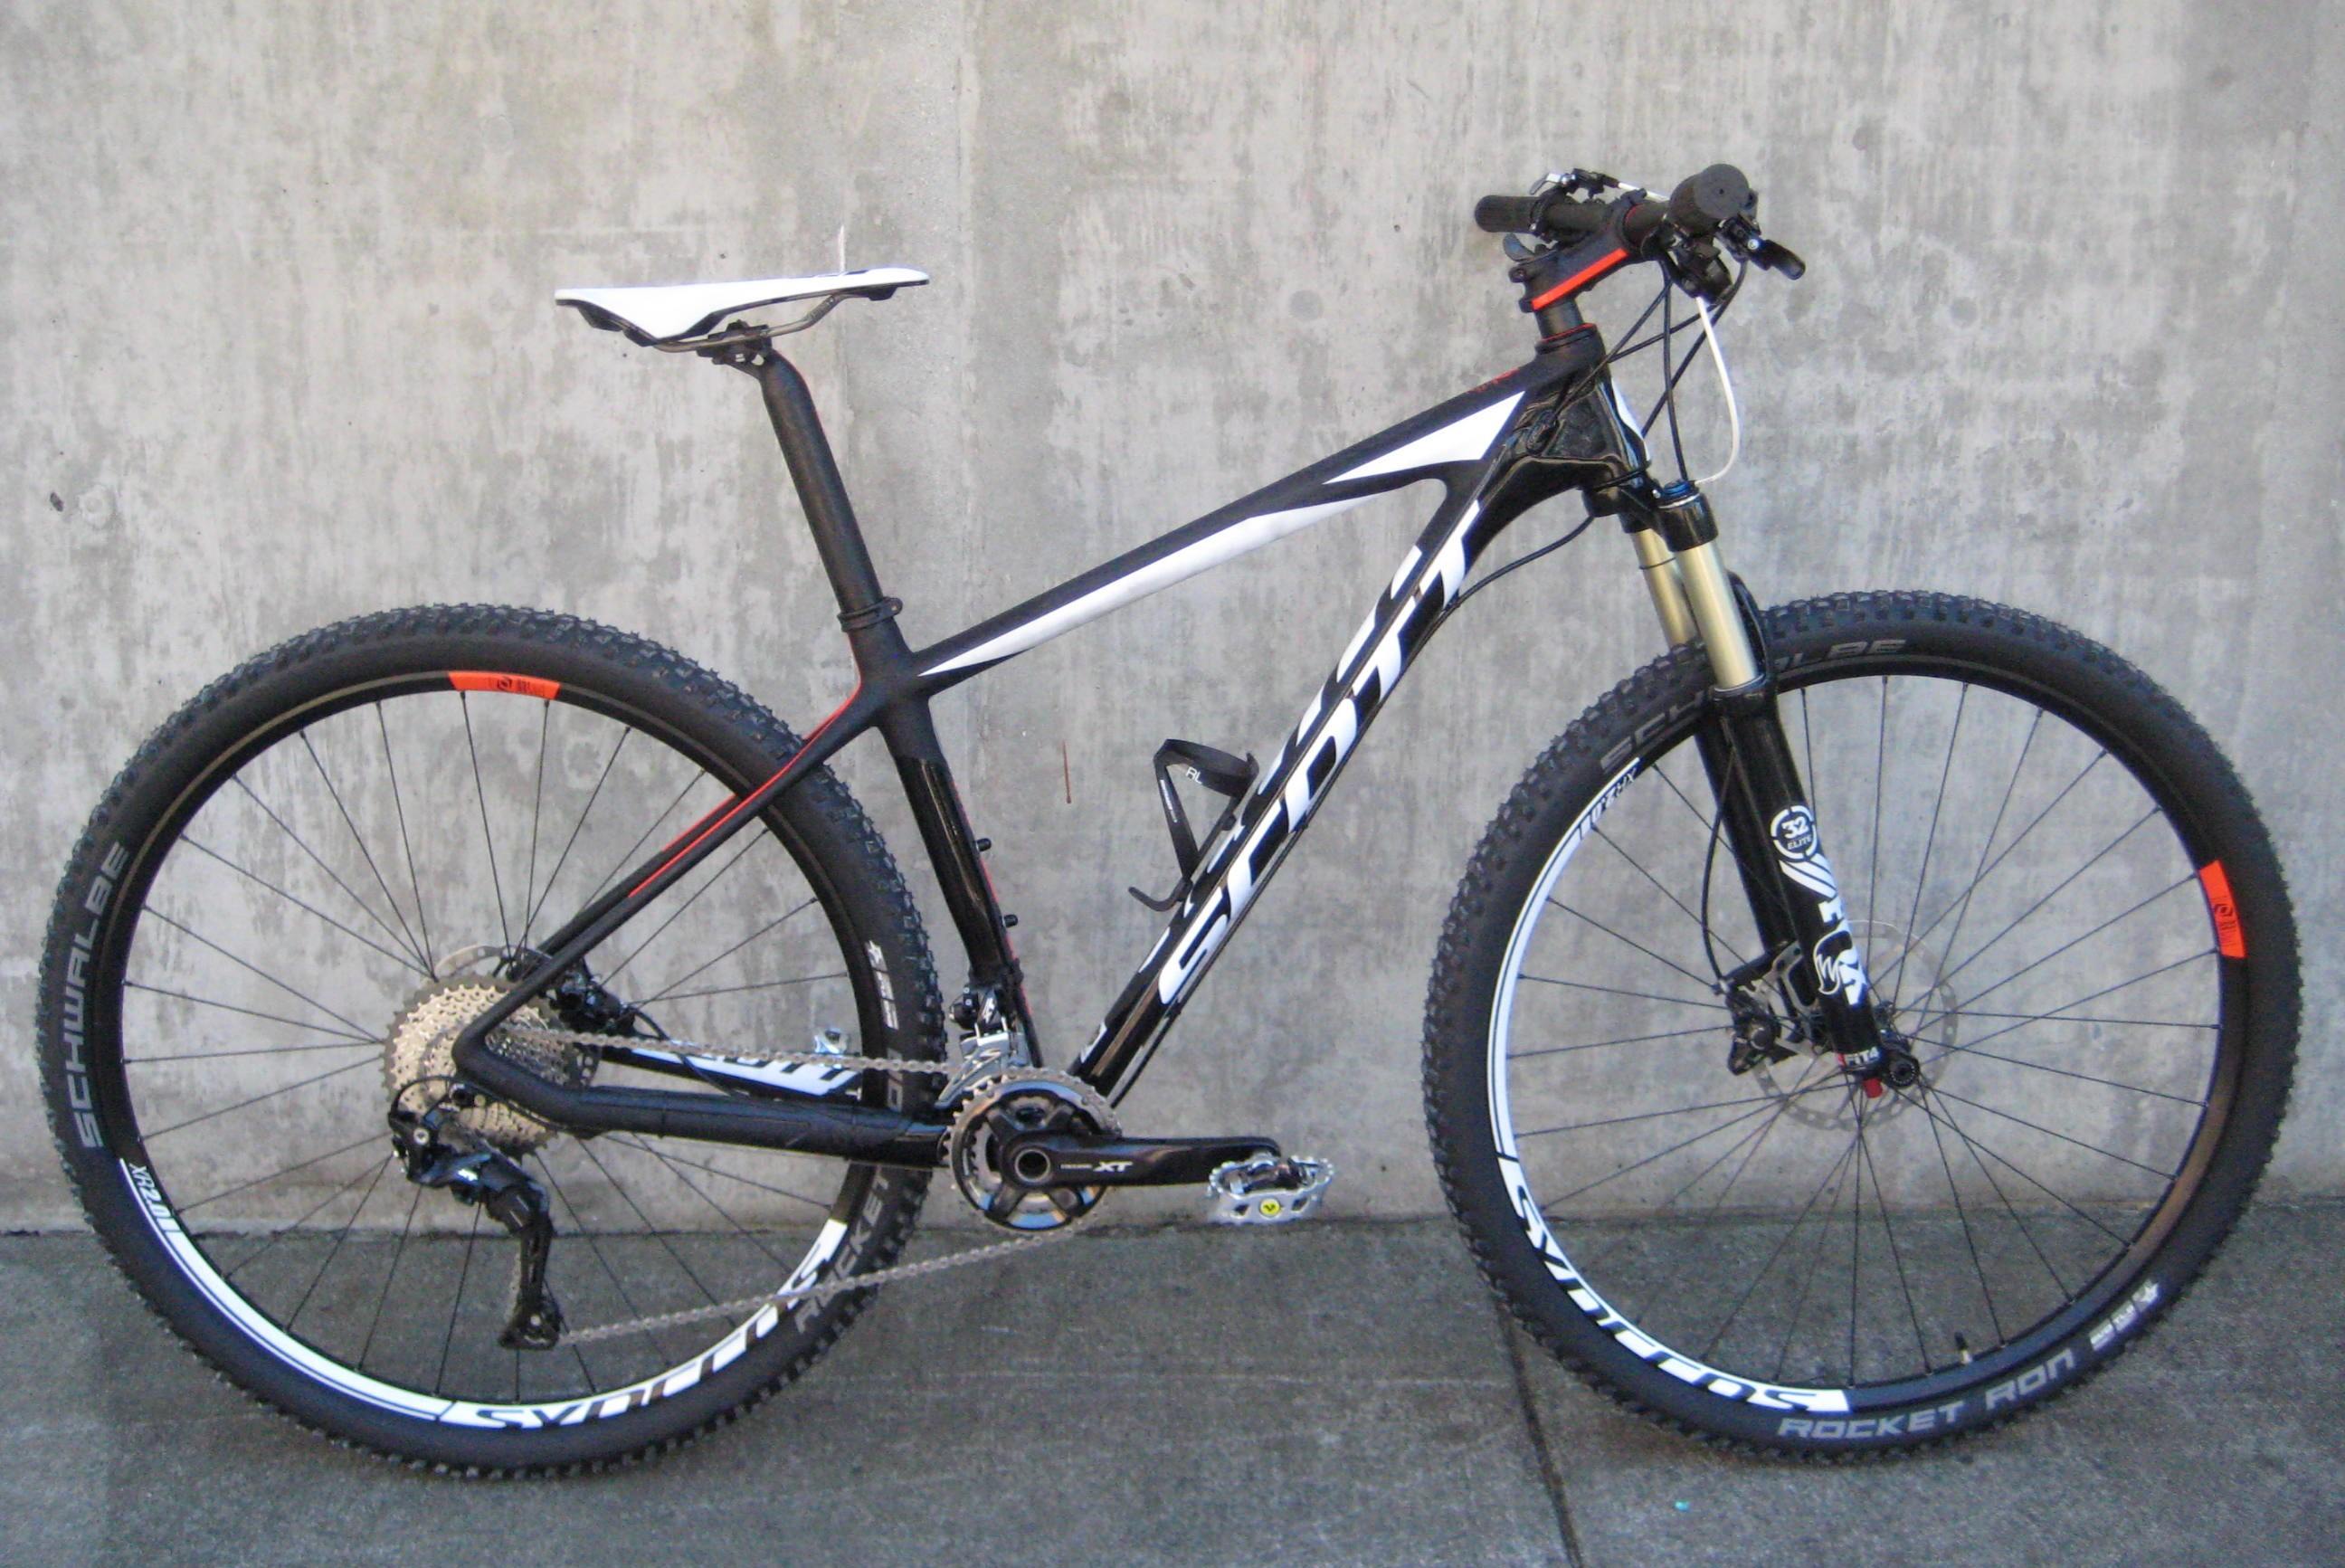 Pics Photos - 2014 Scott Scale 900 Rc Bike Scott Scale 900 Rc Bike